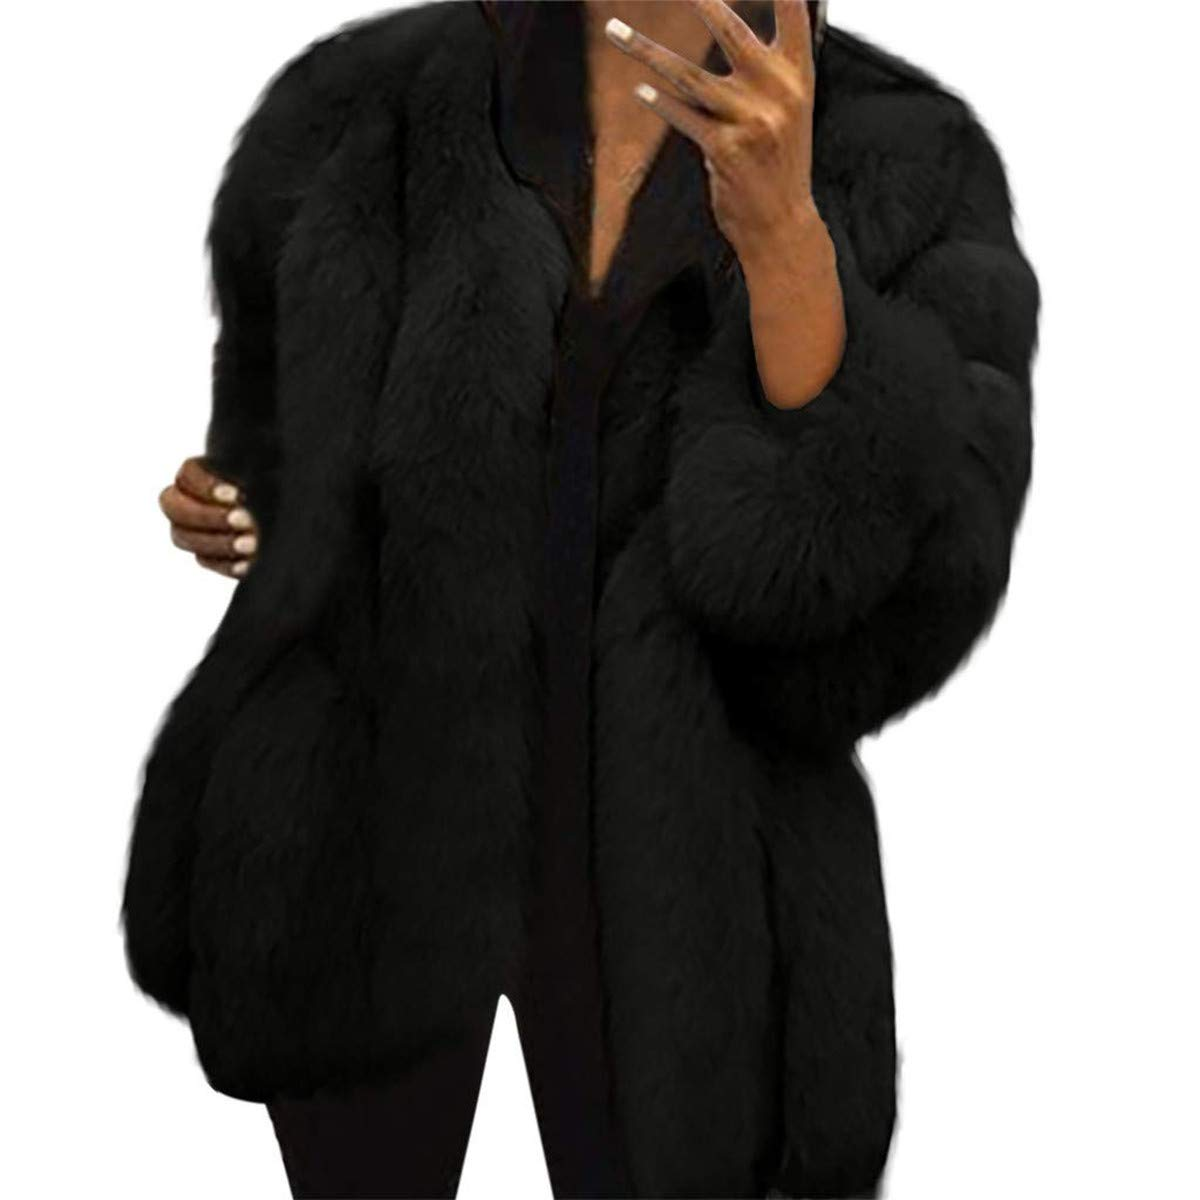 Black Slaoero Women Luxury Winter Warm Fluffy Faux Fur Short Coat Parka Plus Outwear